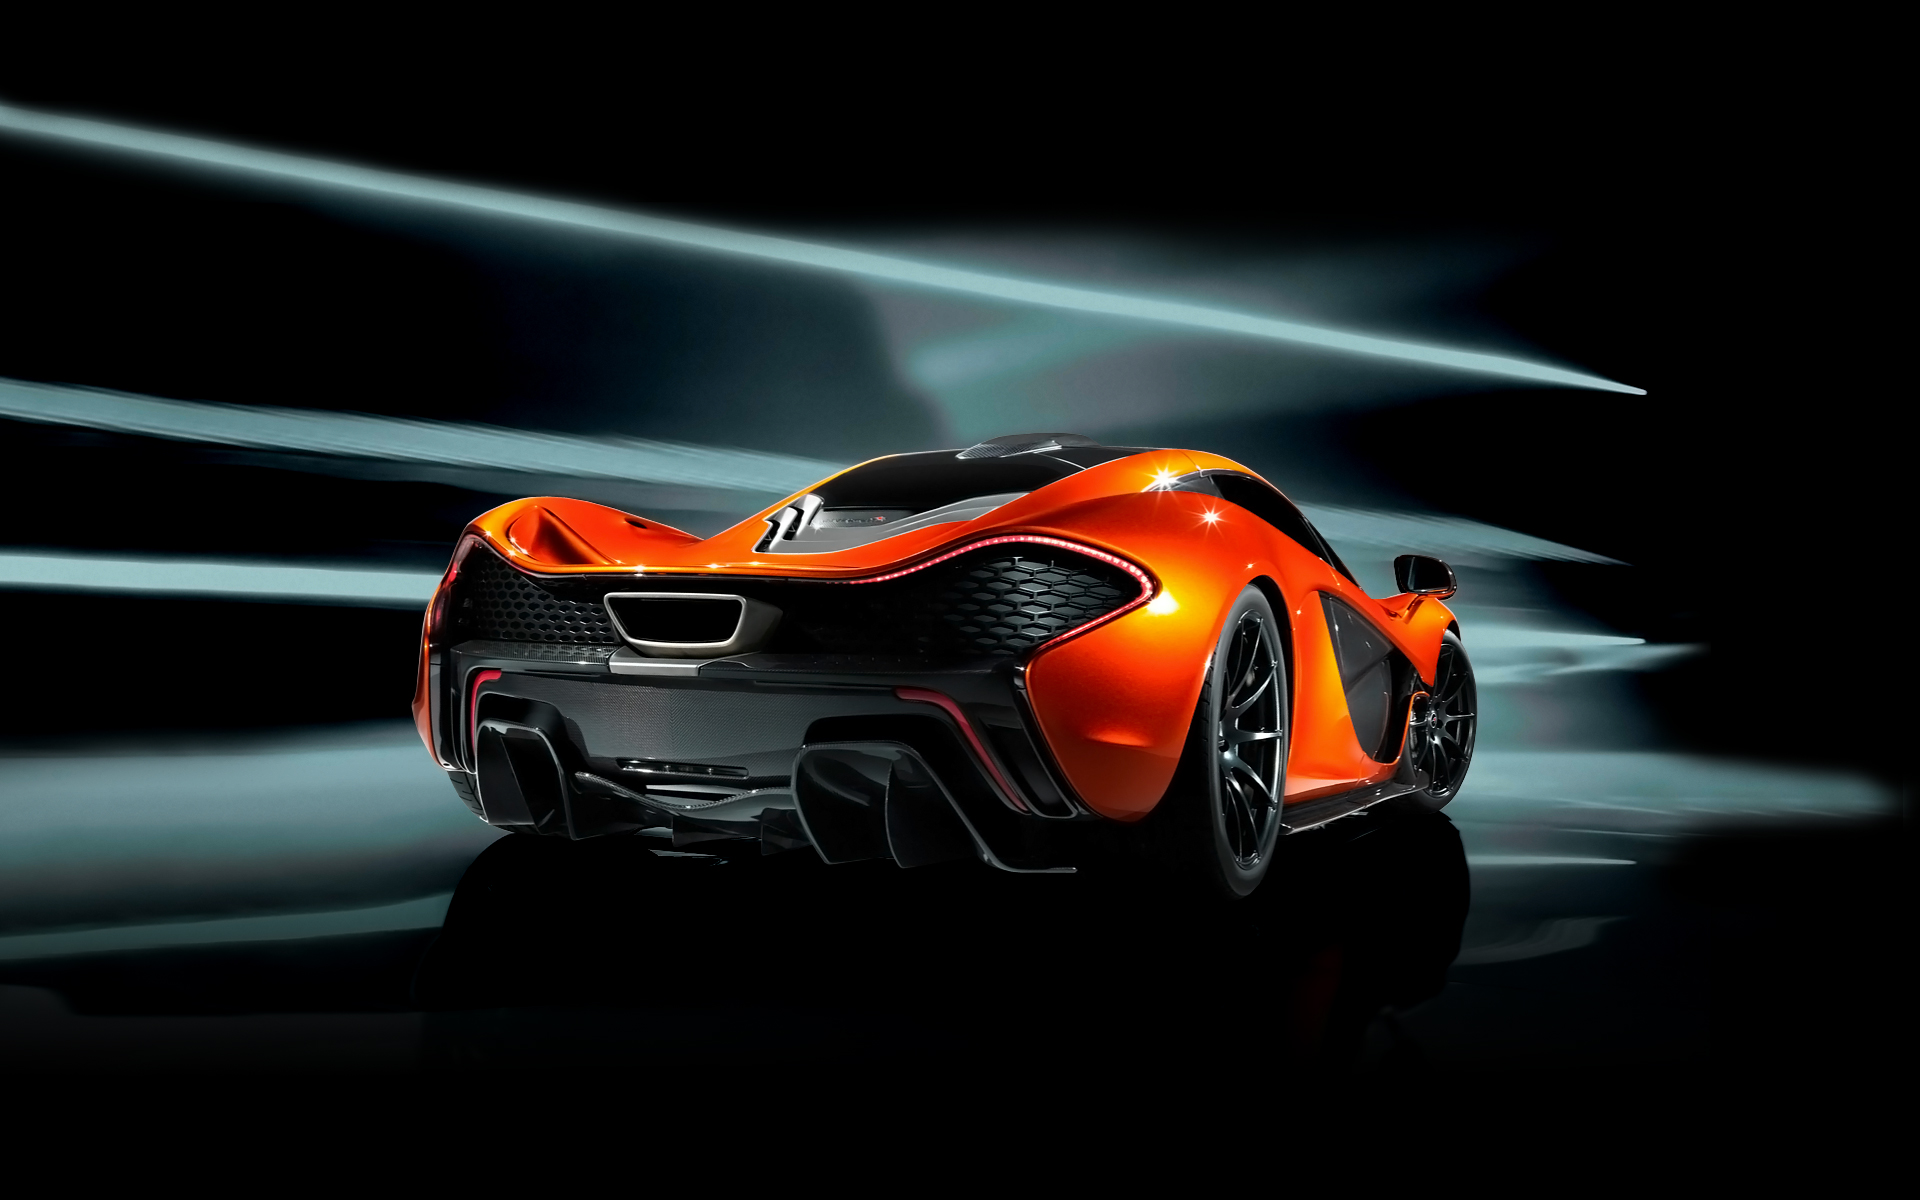 Daily Wallpaper Exclusive The All New McLaren P1 I